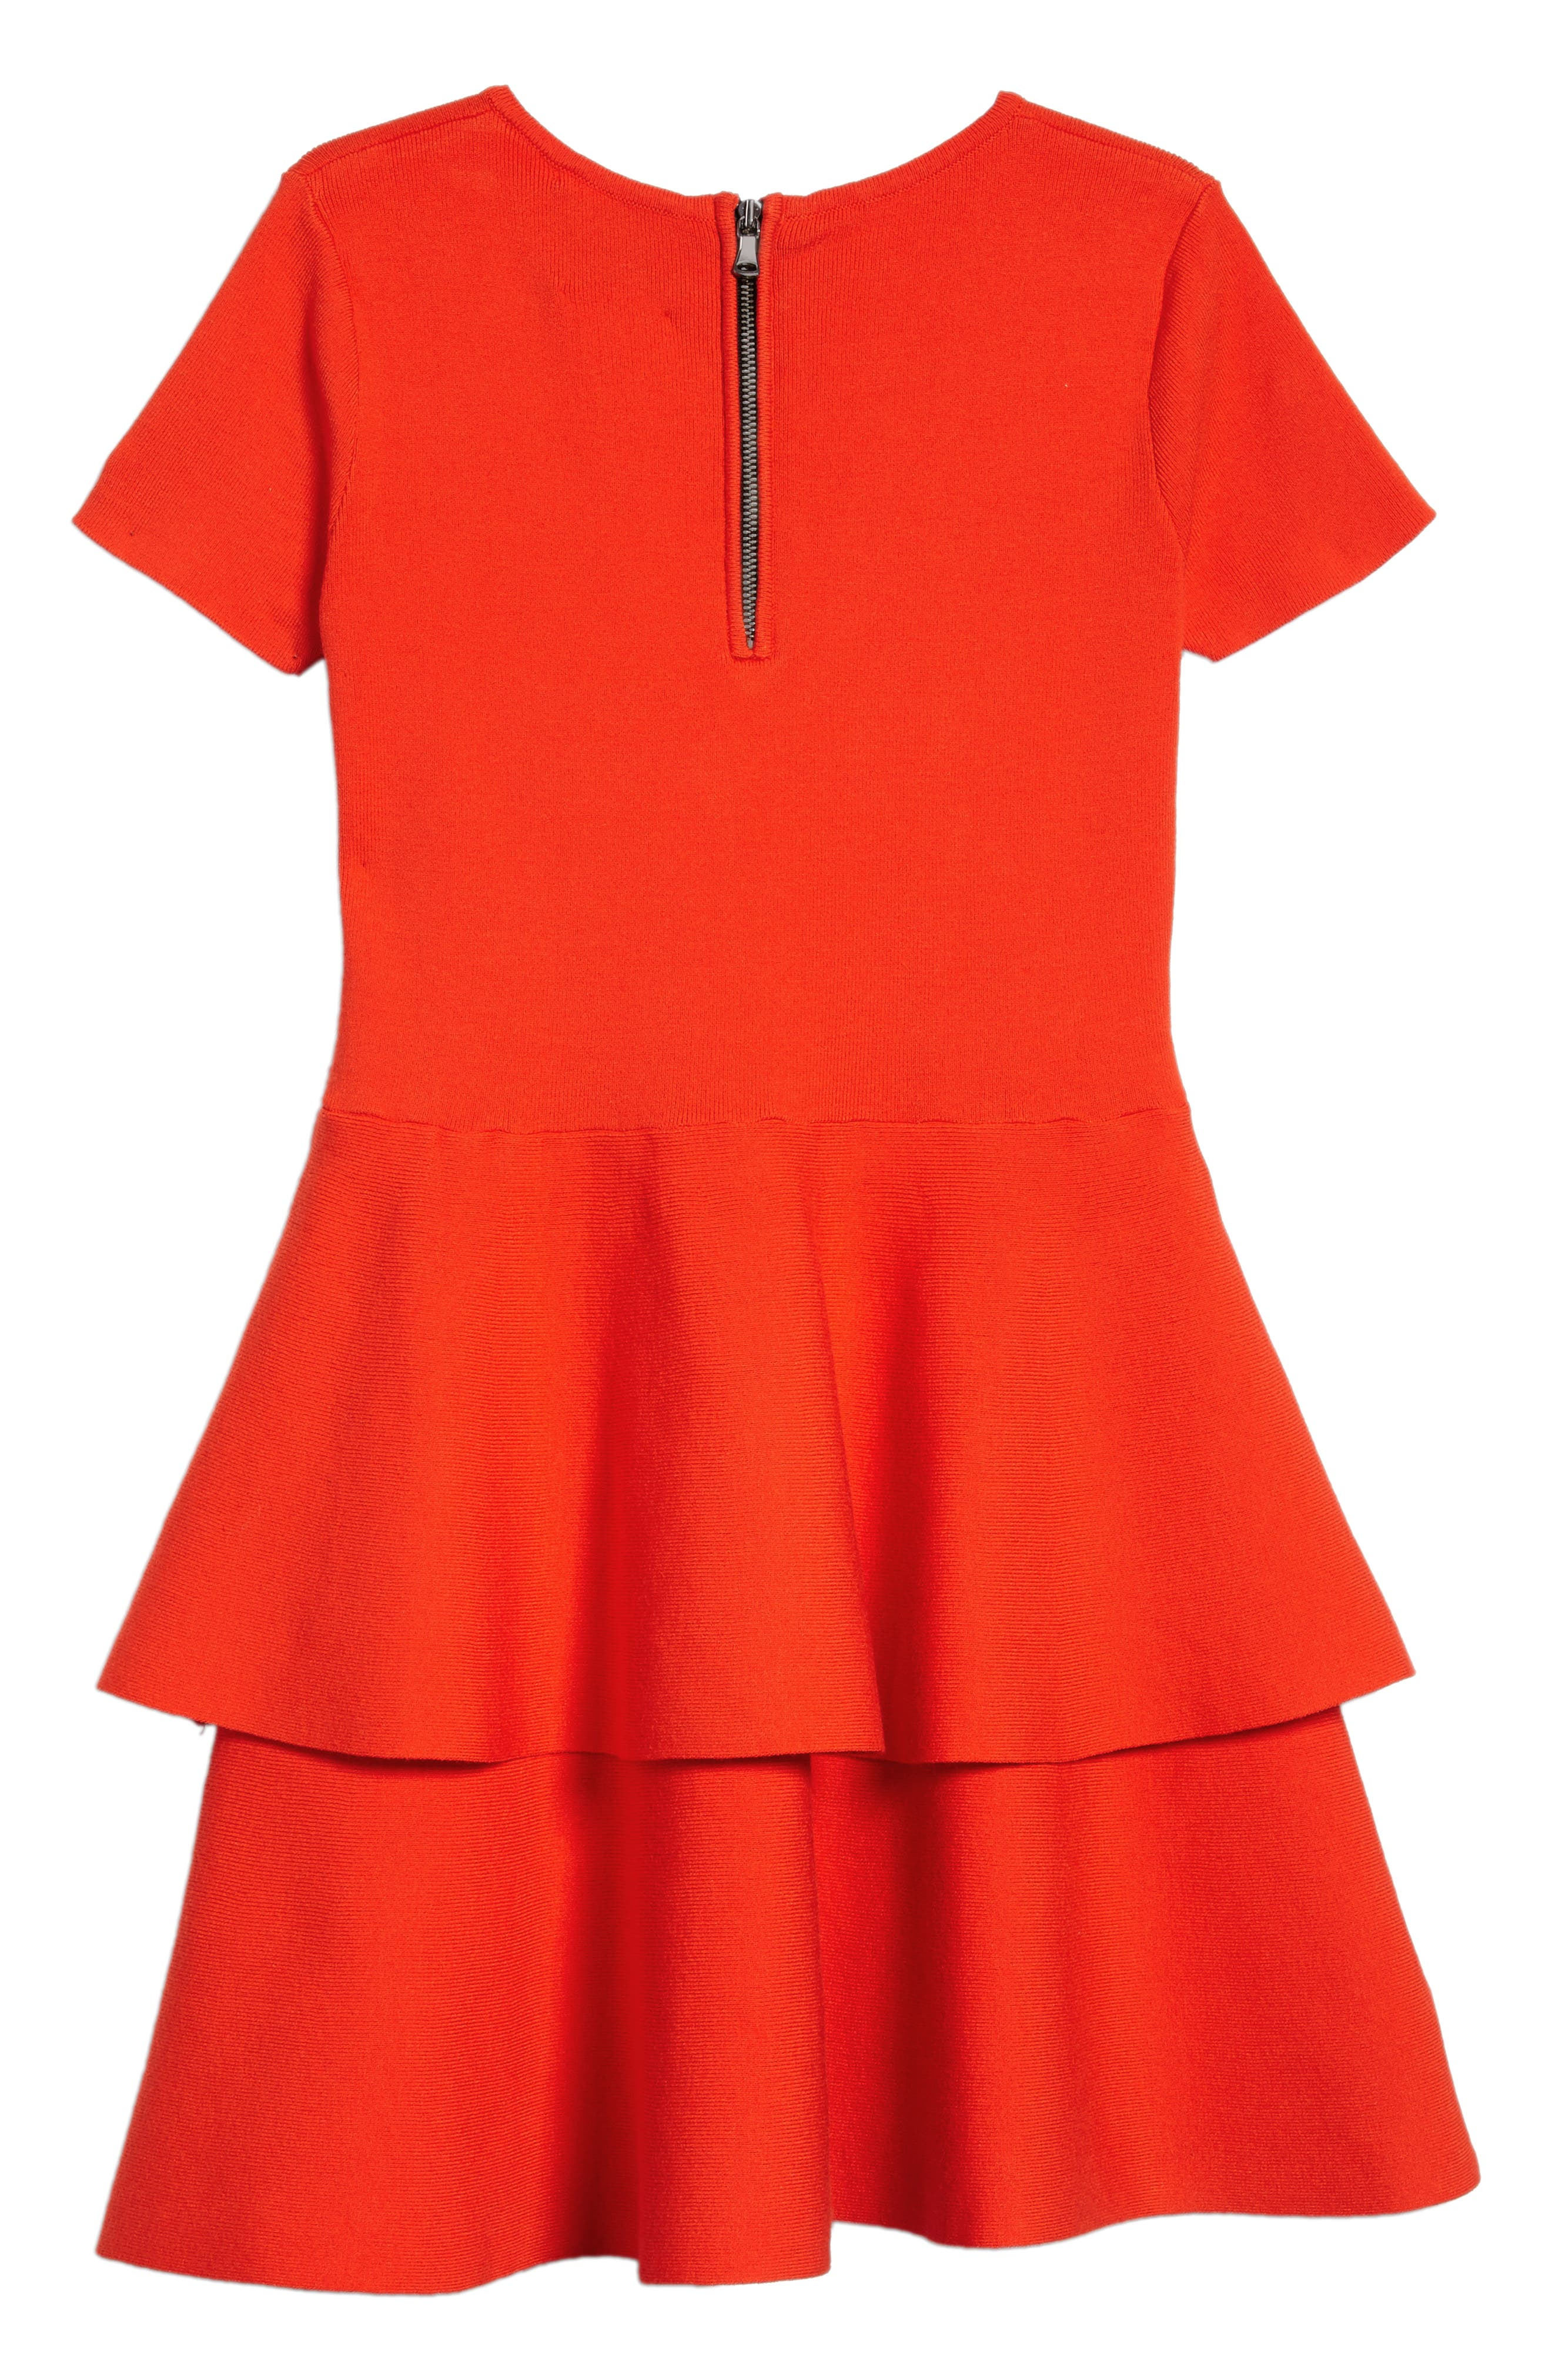 Tiered Dress,                             Alternate thumbnail 2, color,                             Poppy